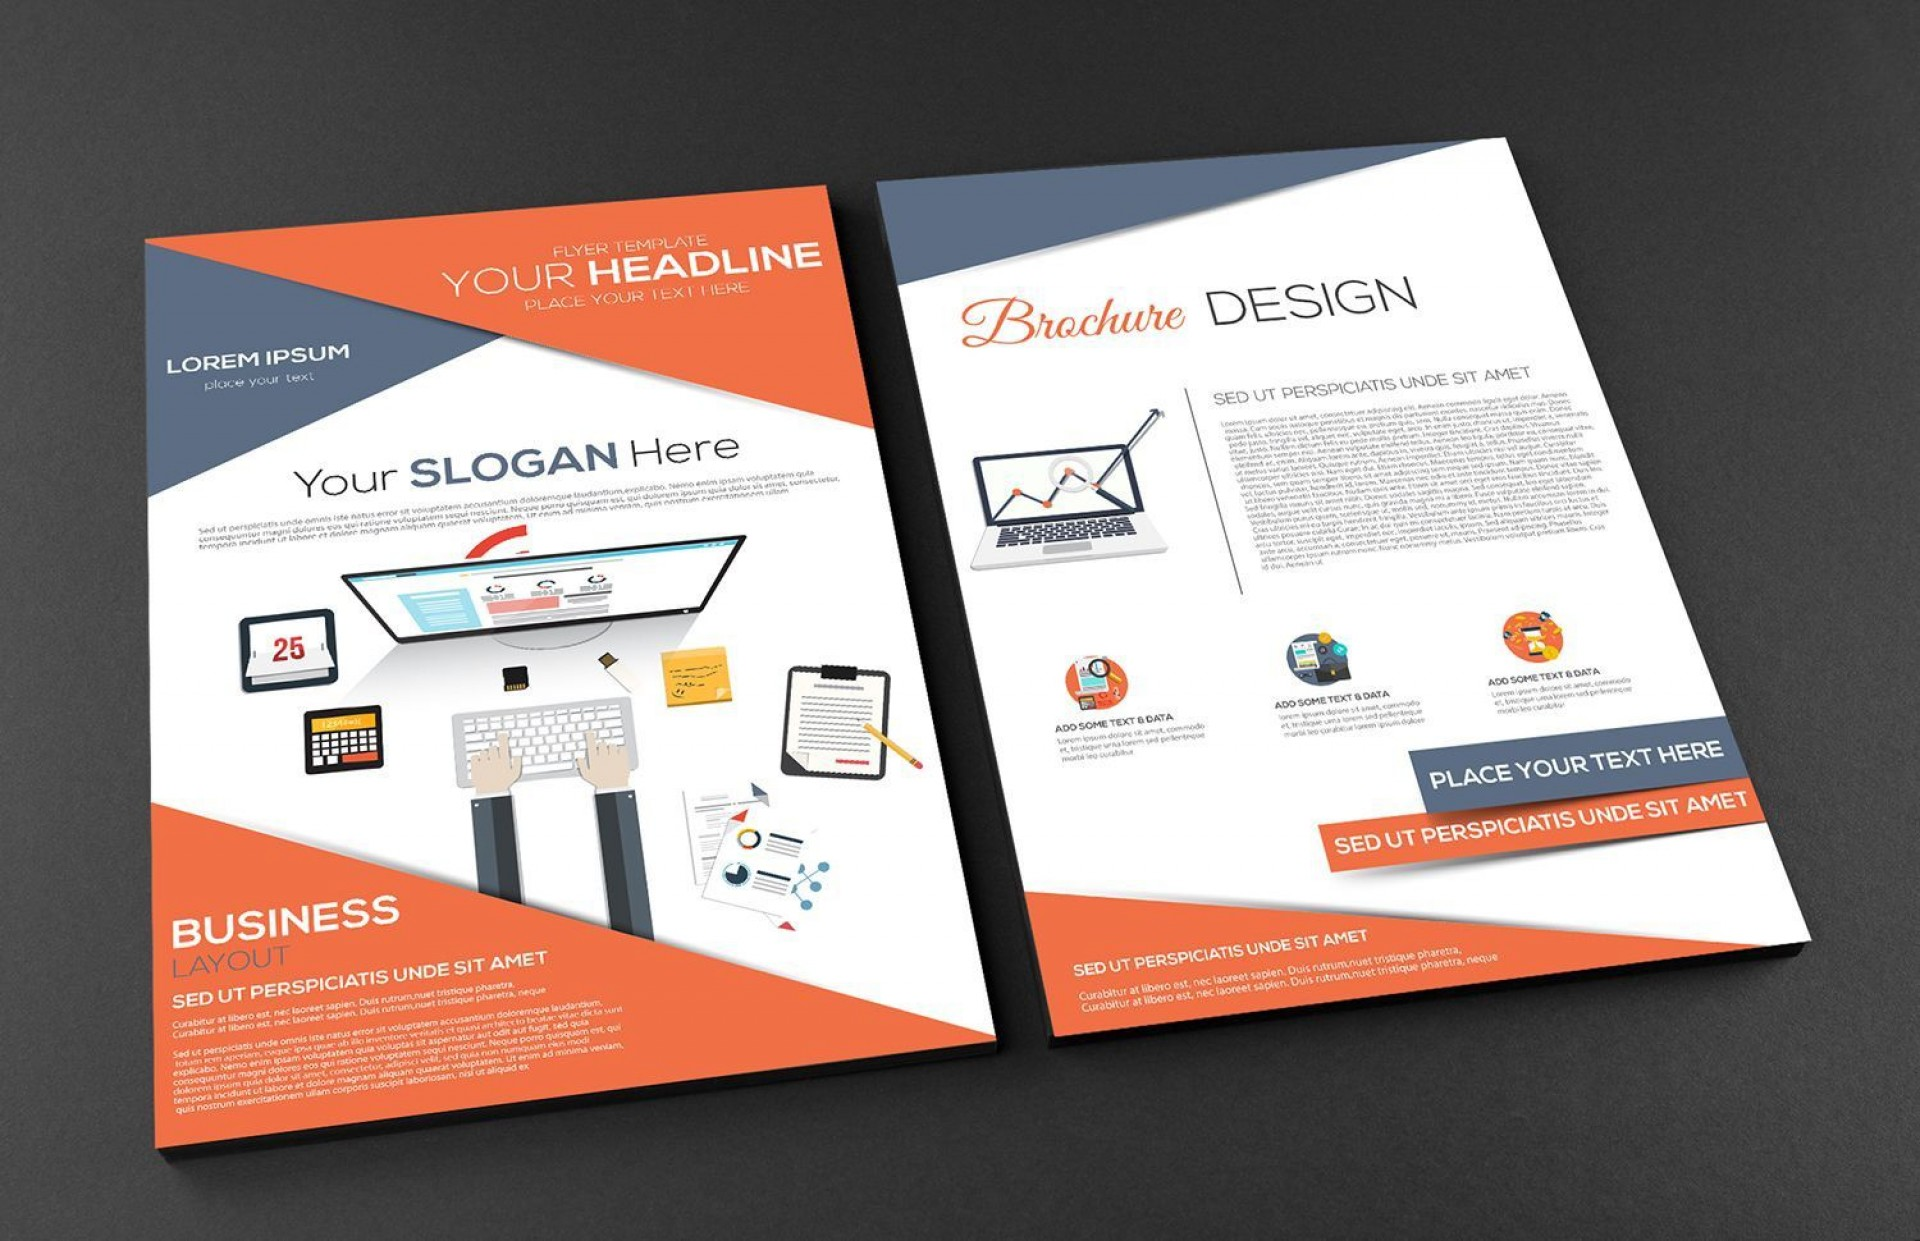 002 Impressive Free Brochure Template Psd File Front And Back Concept 1920